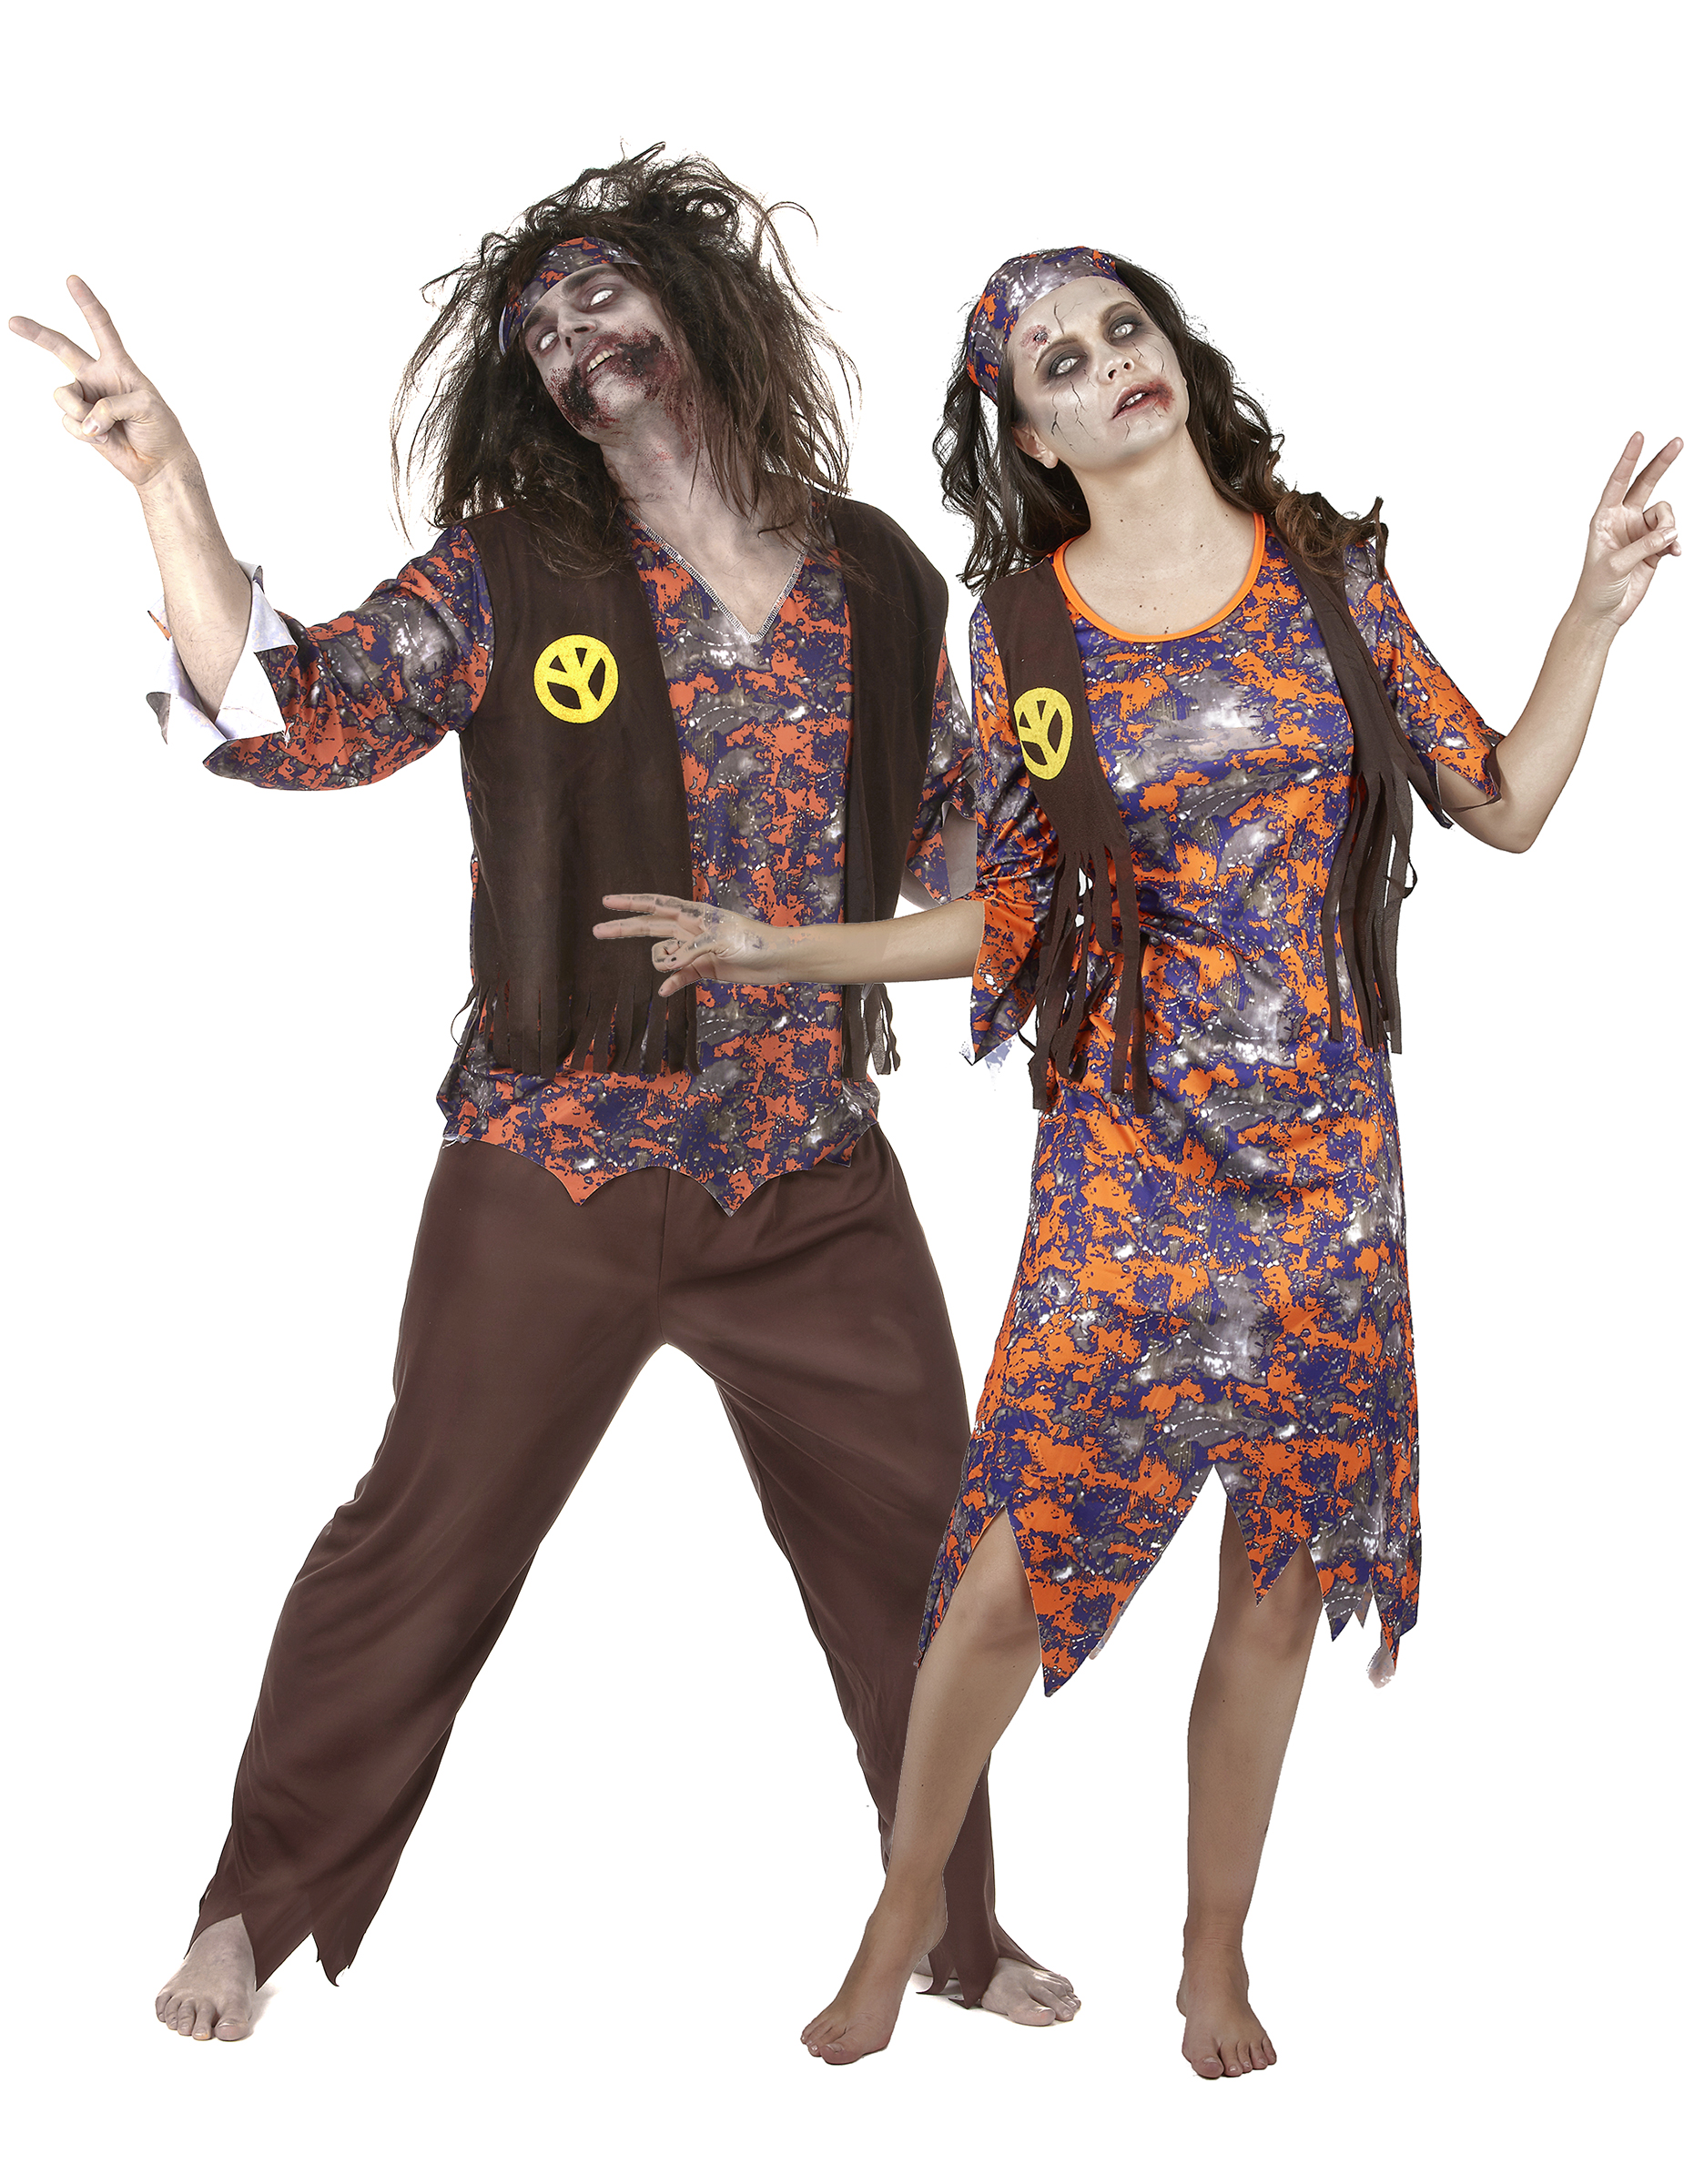 D guisement de couple hippie zombie halloween deguise toi achat de d guisements couples - Deguisement couple halloween ...